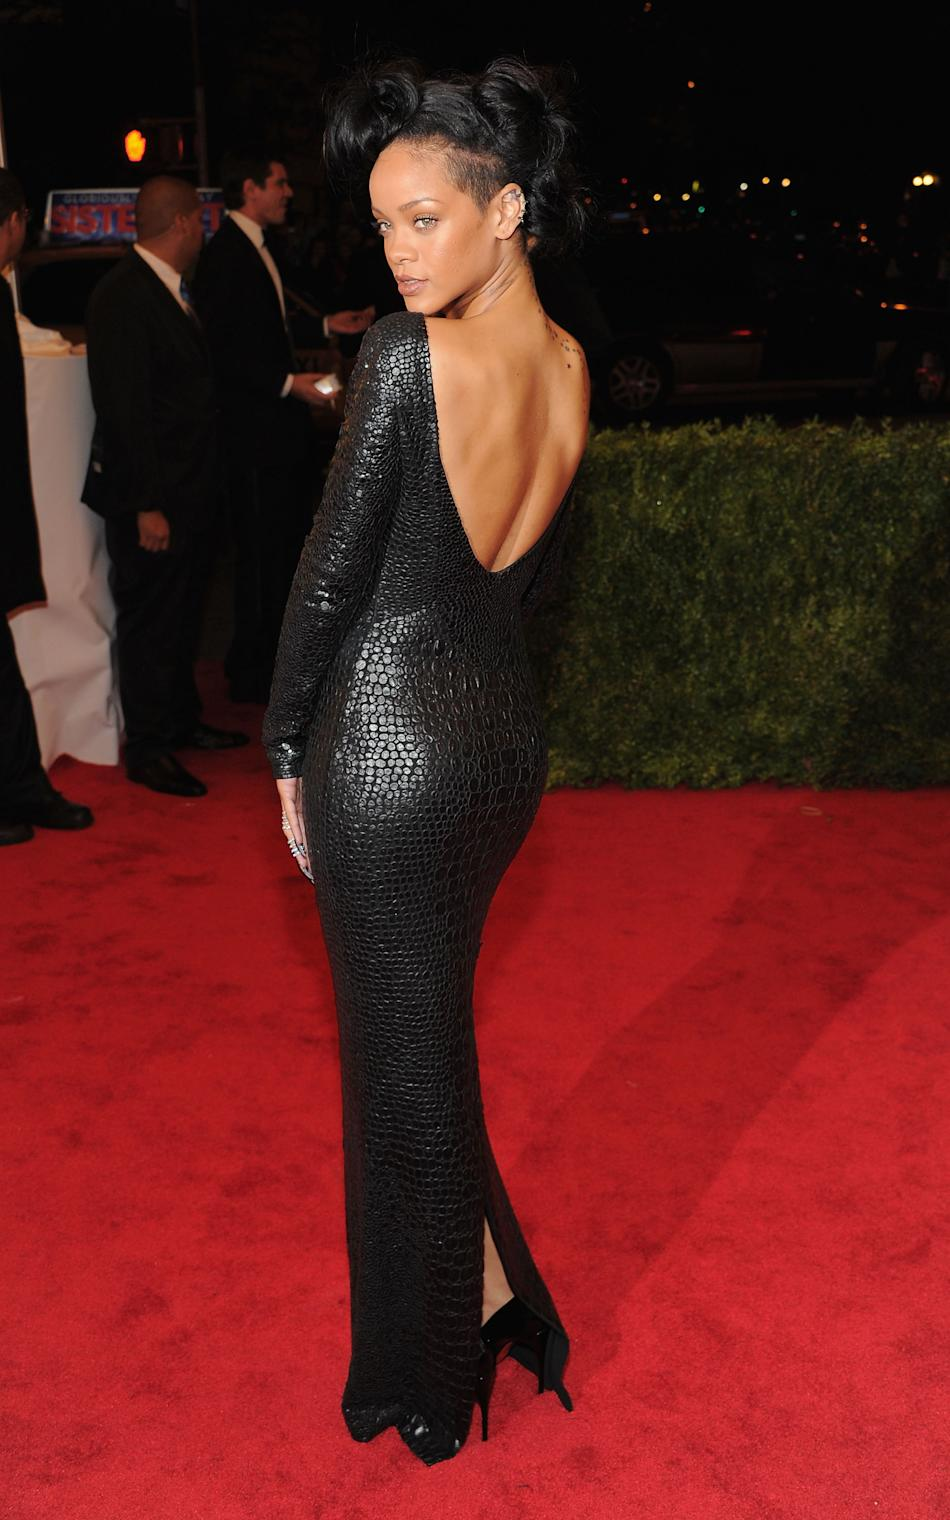 Yes, you're looking at a backless crocodile Tom Ford gown. This happened at the 2012 Met Gala and Rihanna wore it like a glove. (Larry Busacca/WireImage)